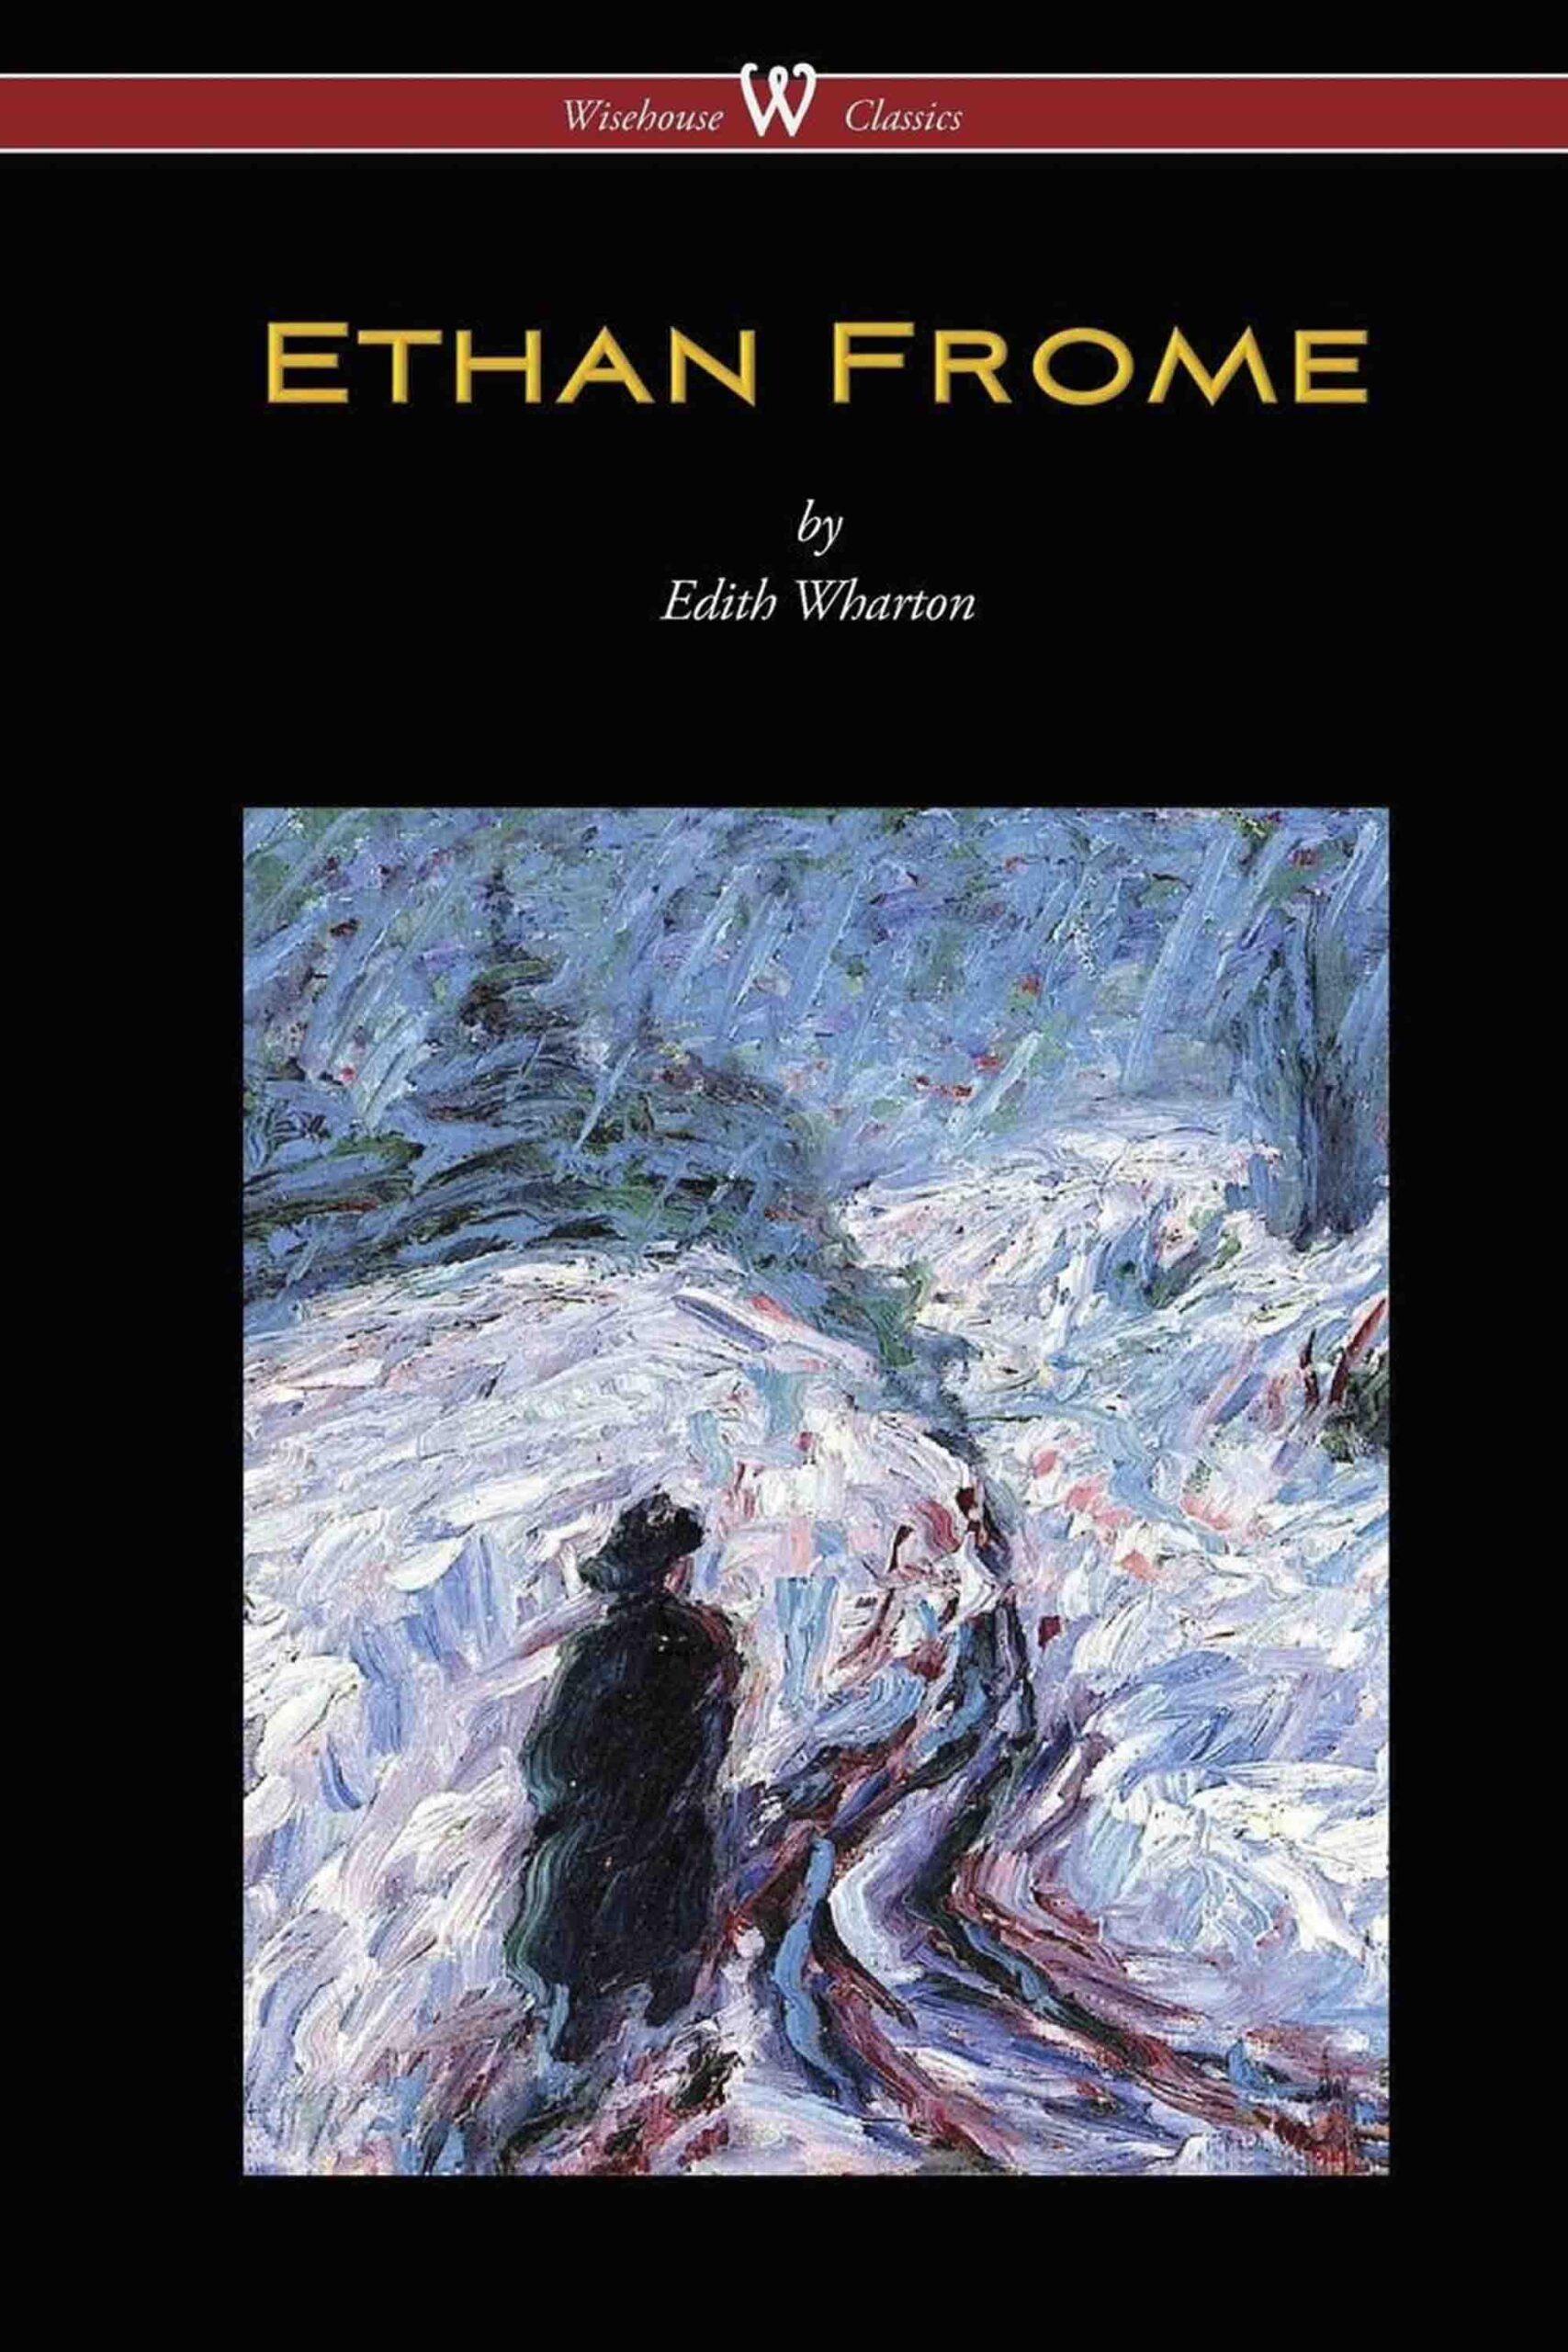 Ethan Frome (Wisehouse Classics Edition – With an Introduction by Edith Wharton)